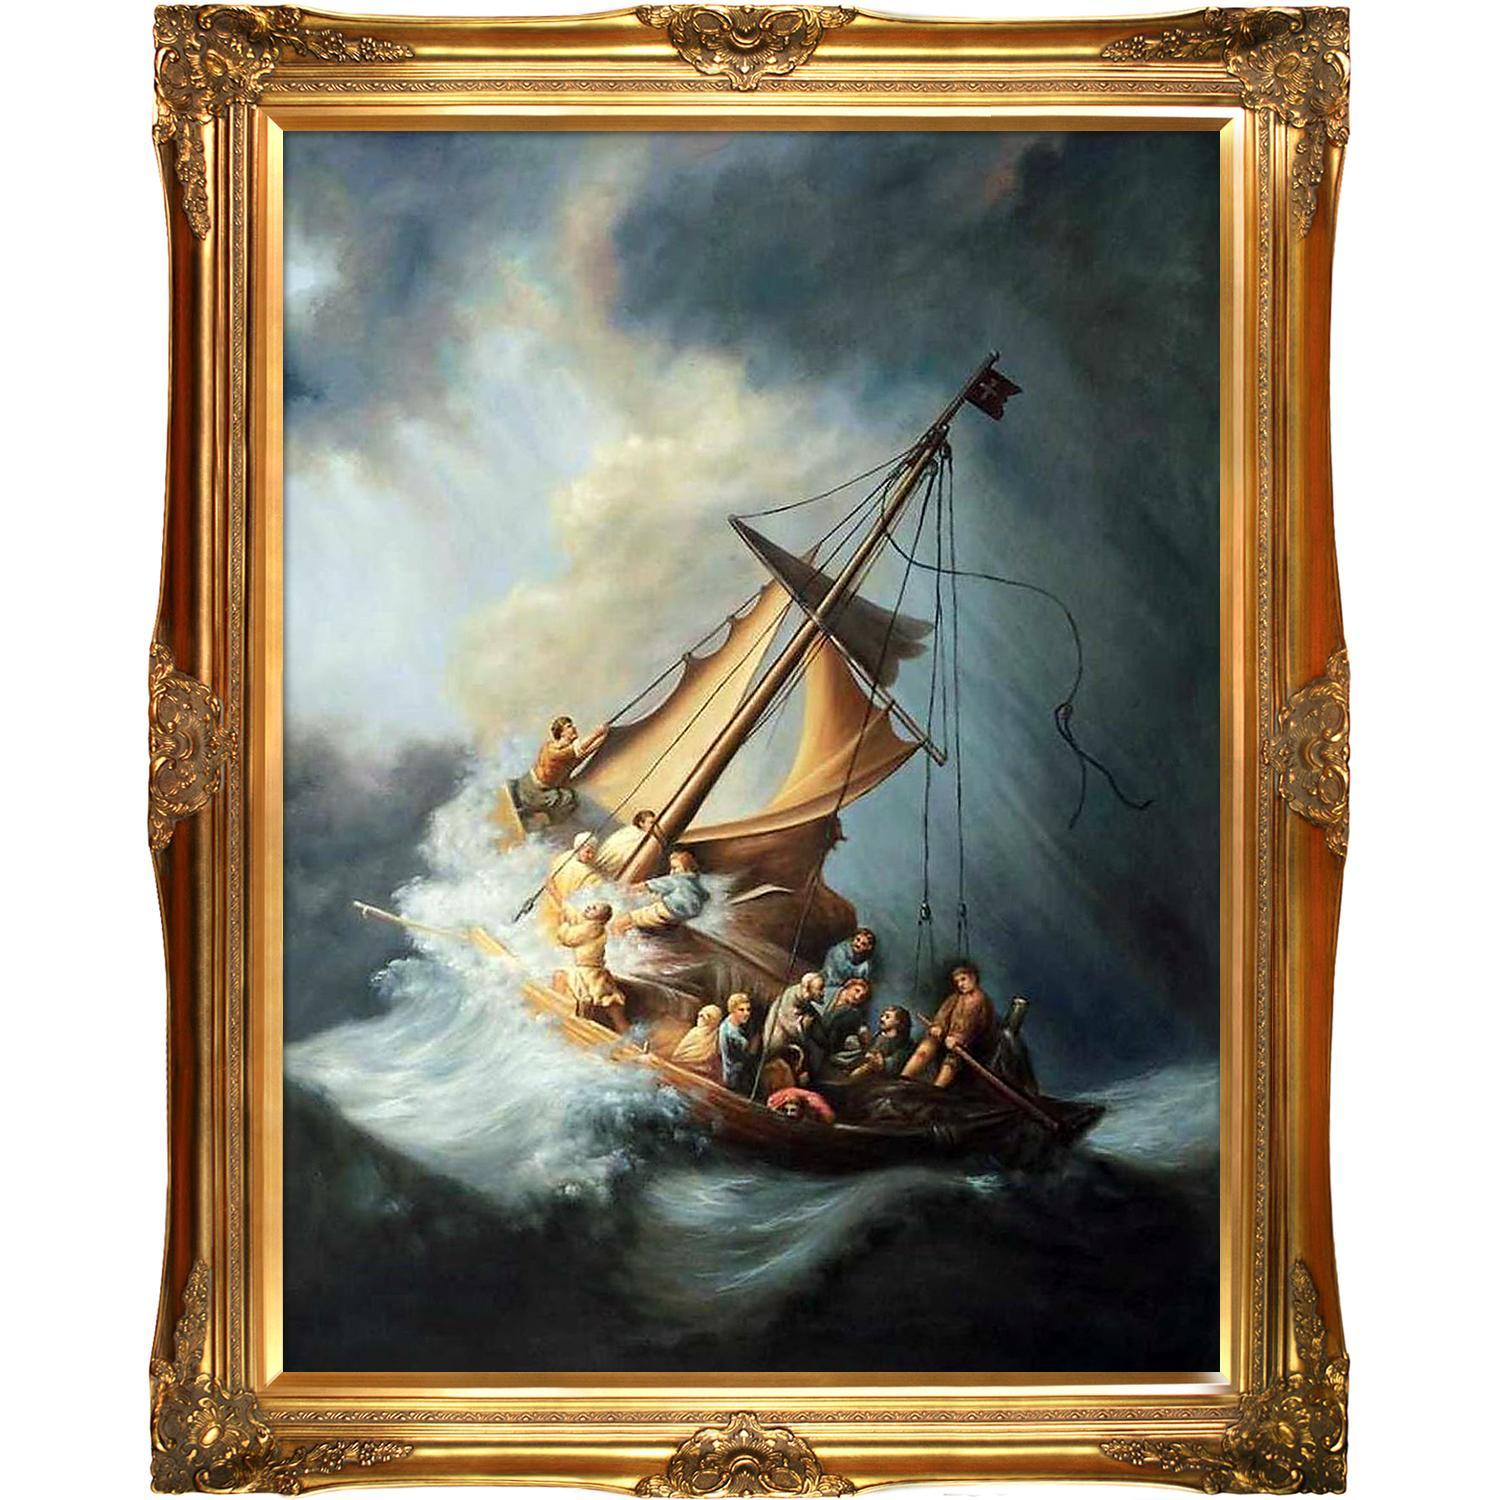 Christ in the Storm by Rembrandt Framed Hand Painted Oil on Canvas